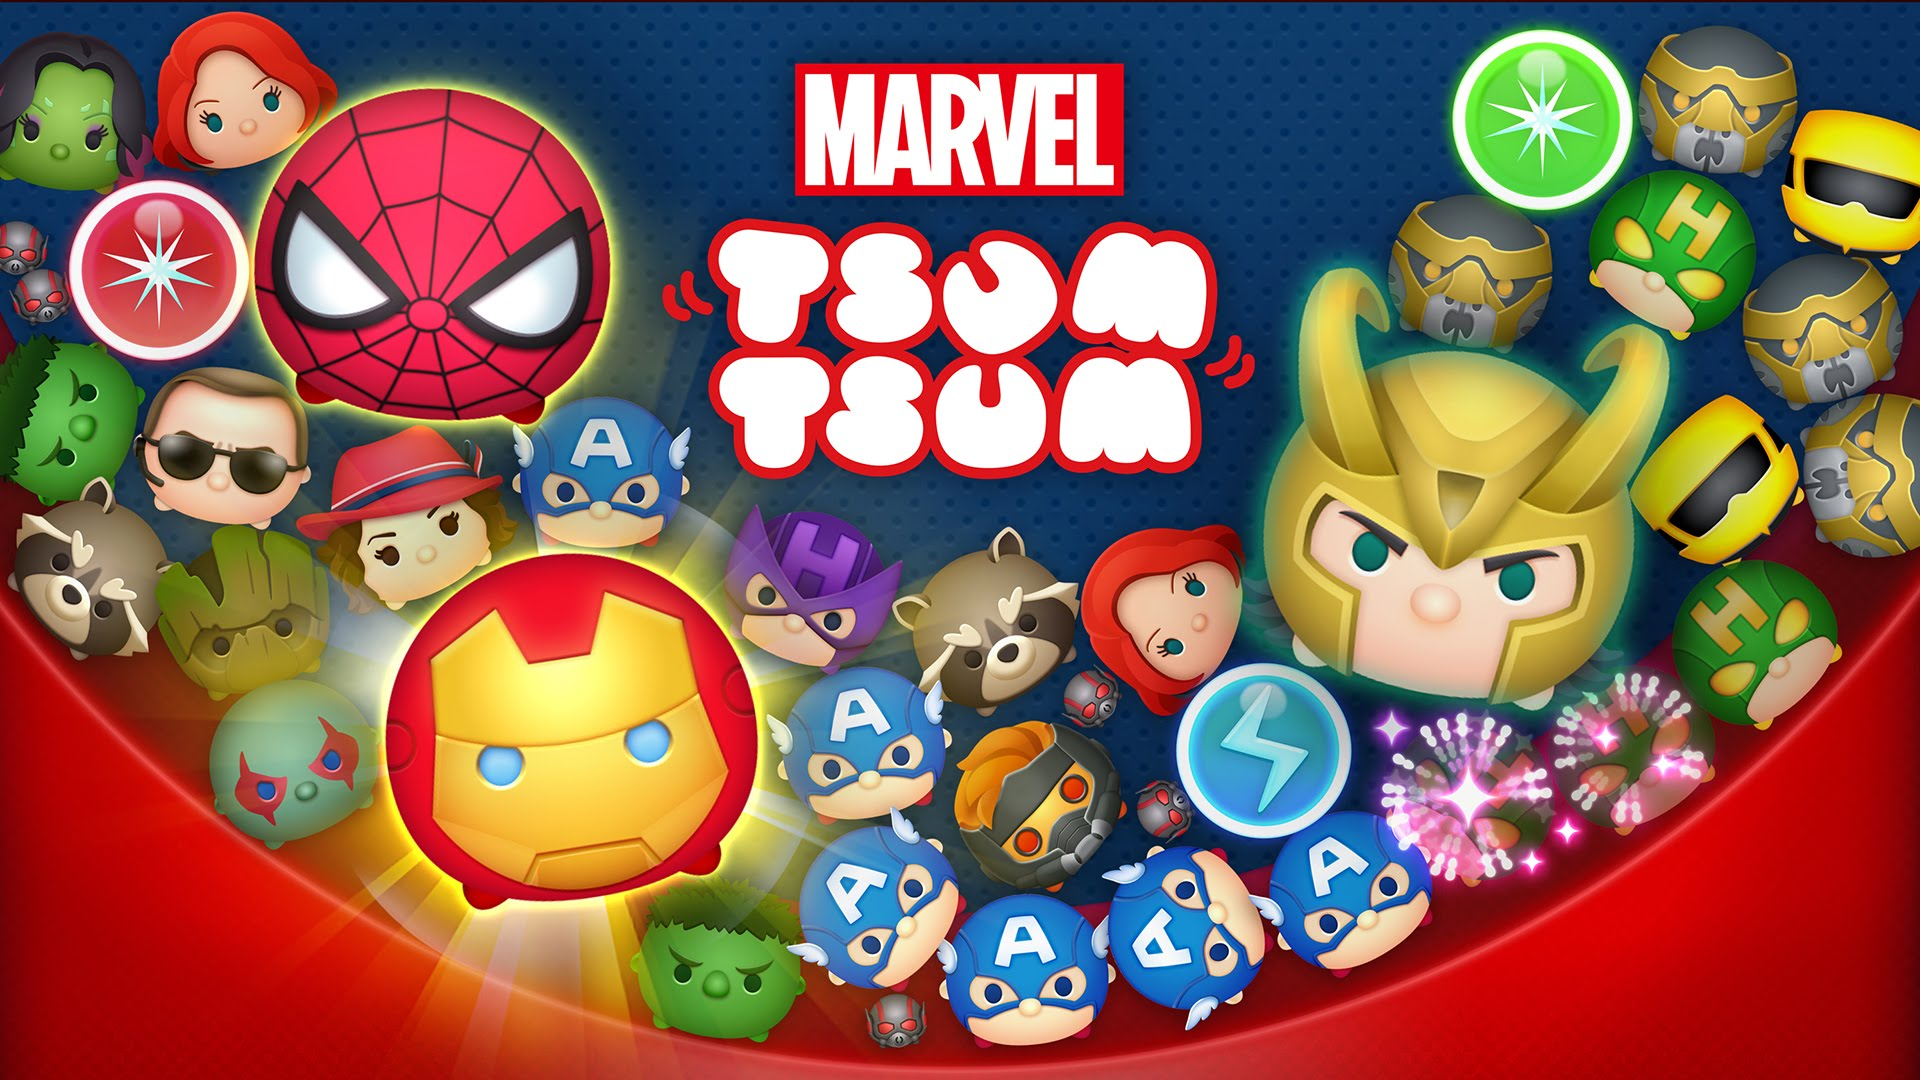 Amazing Wallpaper Marvel Songbird - marvel-tsum-tsum-best-character-ranking-list-last-green-highest-hp-score-atk-def  HD_947526.jpg